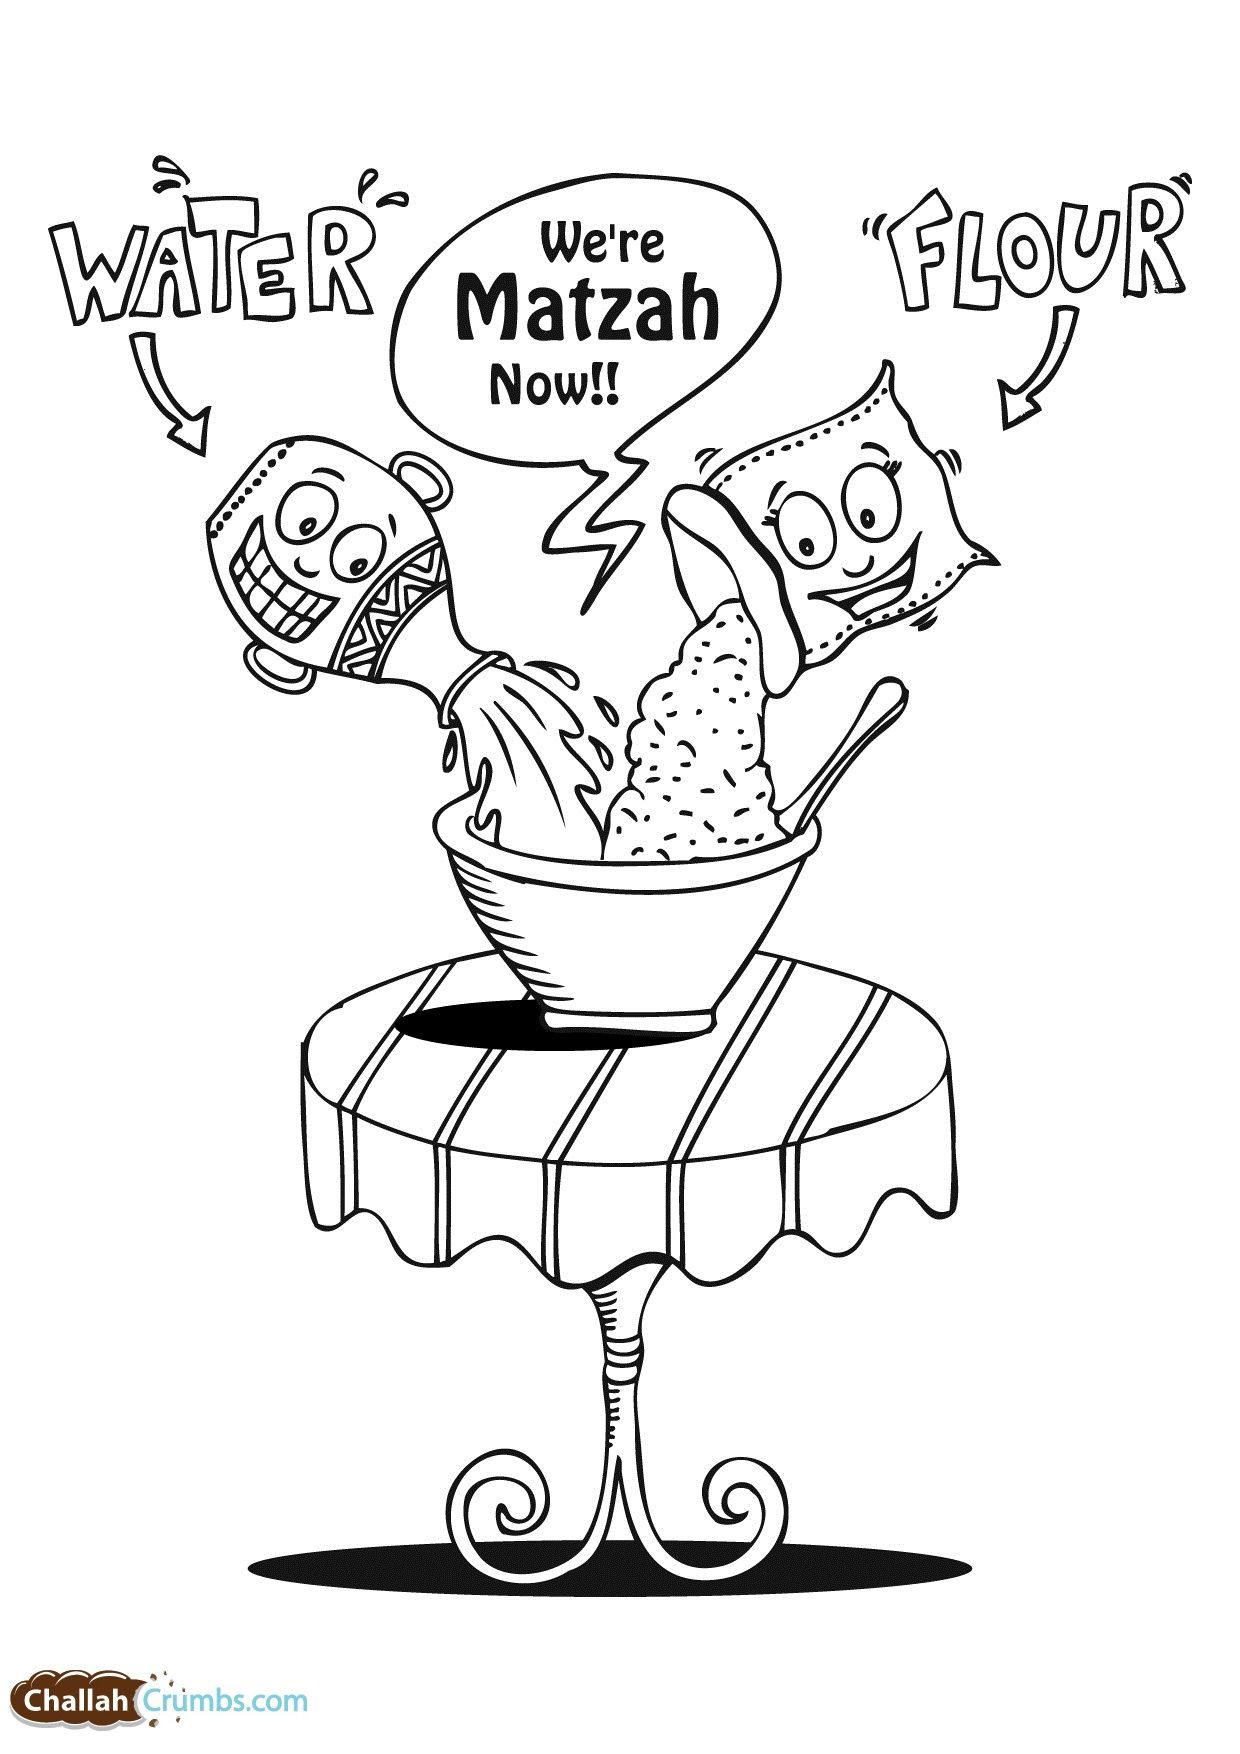 We Re Matza Now Coloring Page Challah Crumbs Passover Crafts Pesach Passover Crafts Preschool [ 1754 x 1240 Pixel ]